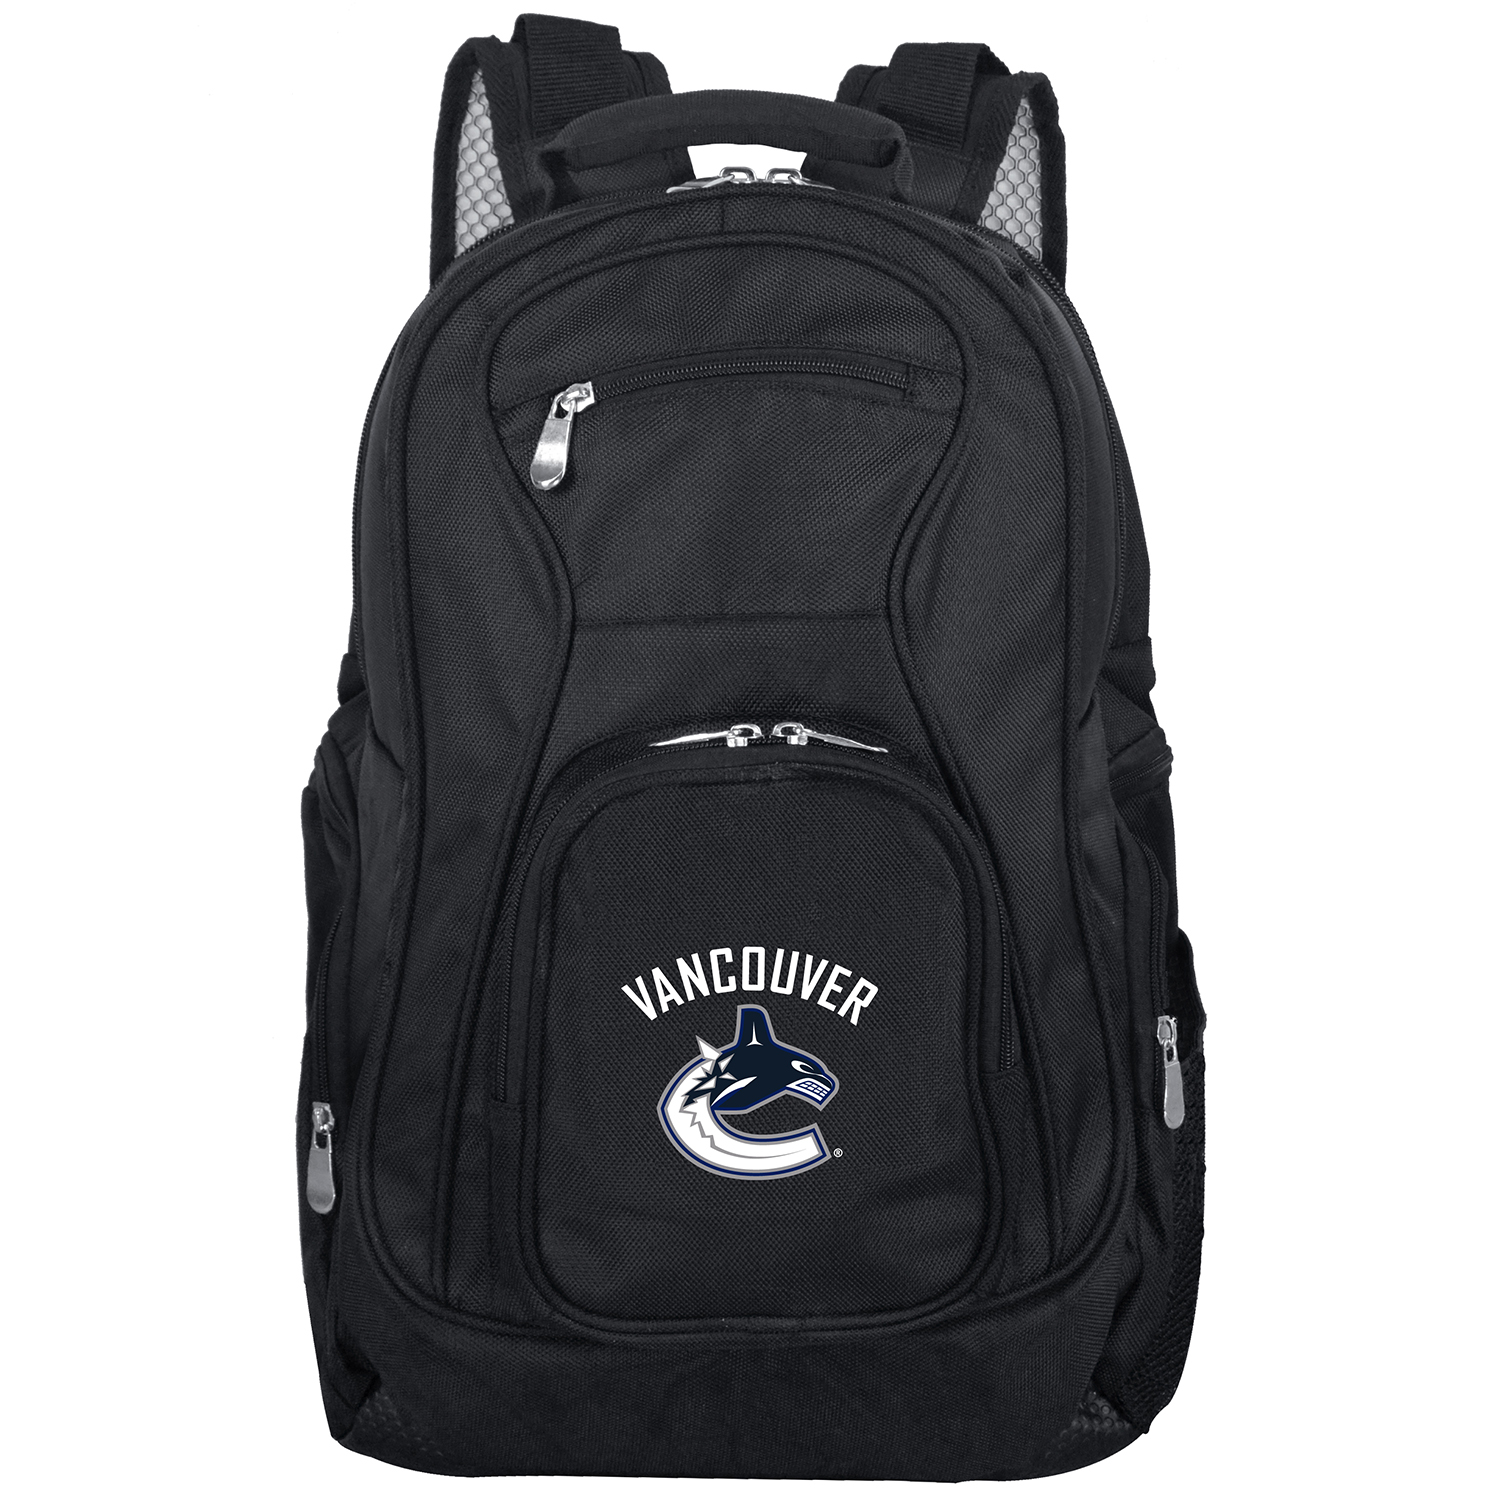 "Vancouver Canucks 19"" Laptop Travel Backpack - Black - No Size"